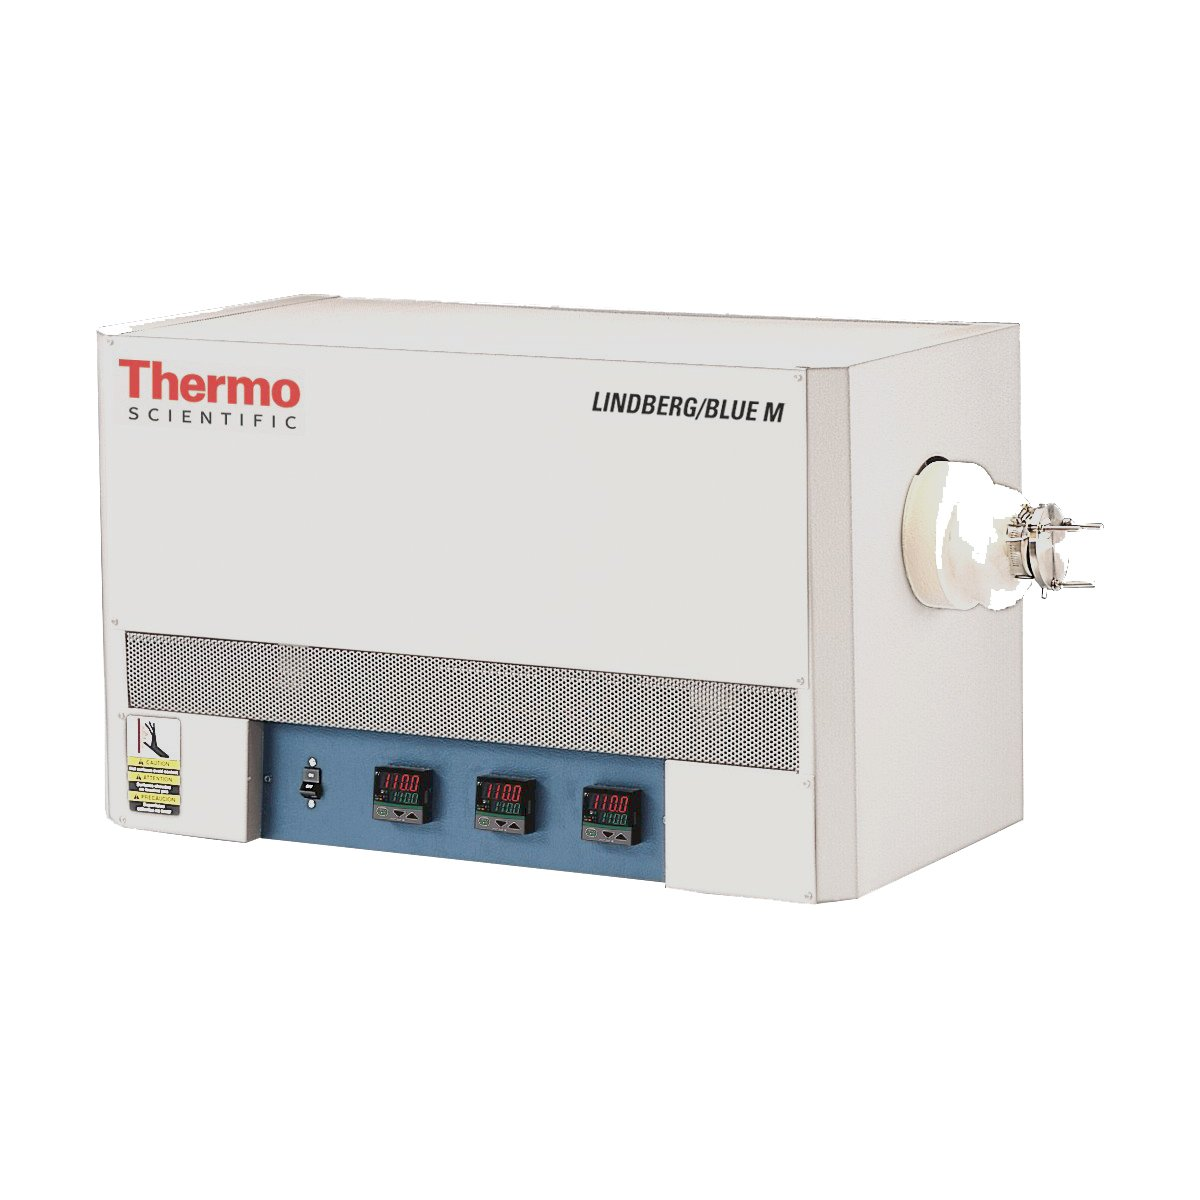 Thermo Scientific STF55666C Lindberg/Blue M 1, 100 Degree C Digital Tube  Furnace with 36-Inch Heated Zone and 3 to 6-Inch Tube O.D, Includes  Integrated ...